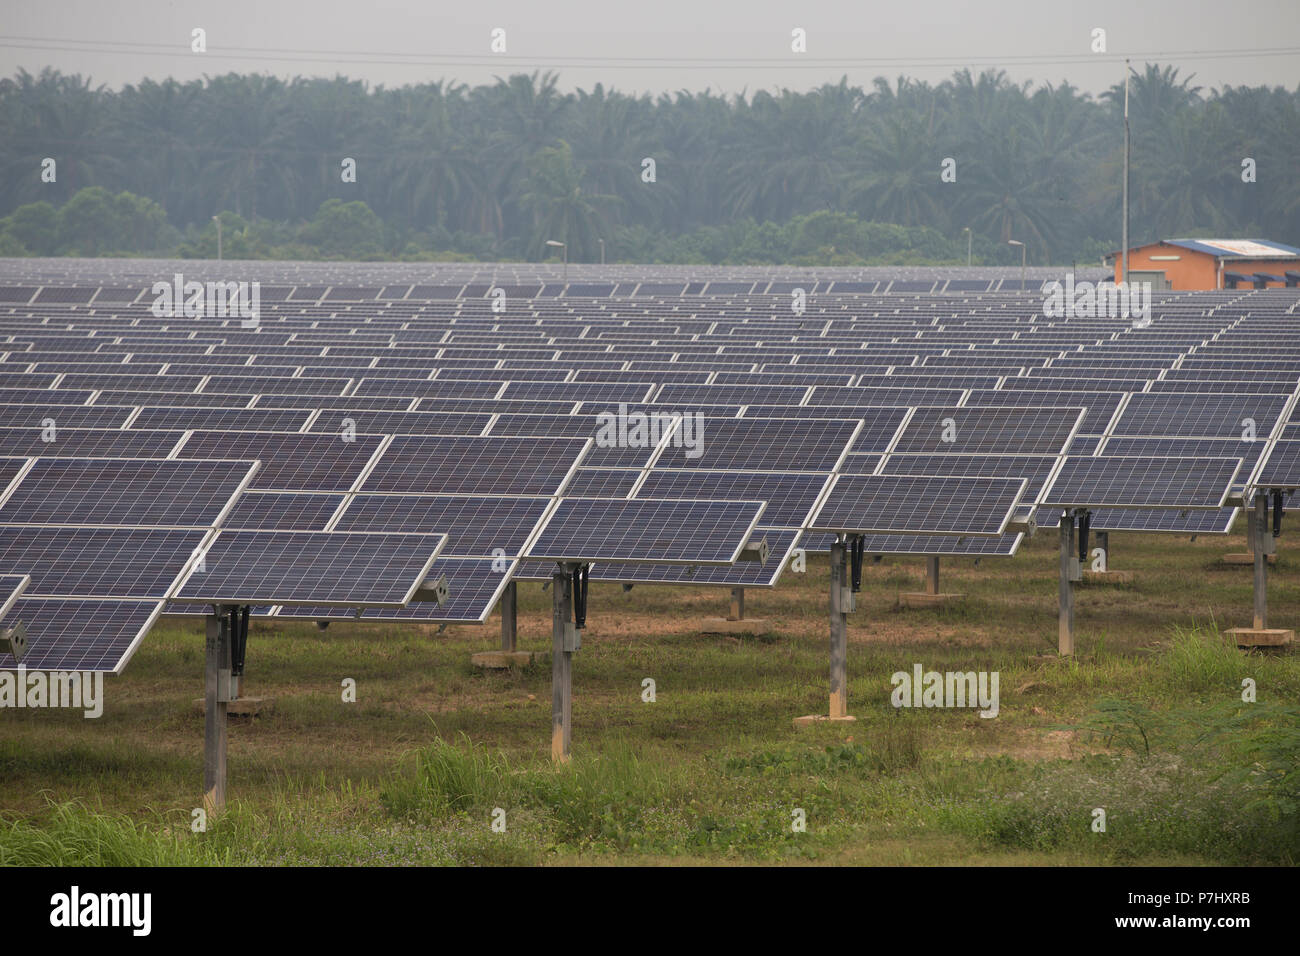 A field of solar panels south of Kuala Lumpur, Malaysia, The panels are used to power the nearby Kuala Lumpur International Airport. - Stock Image